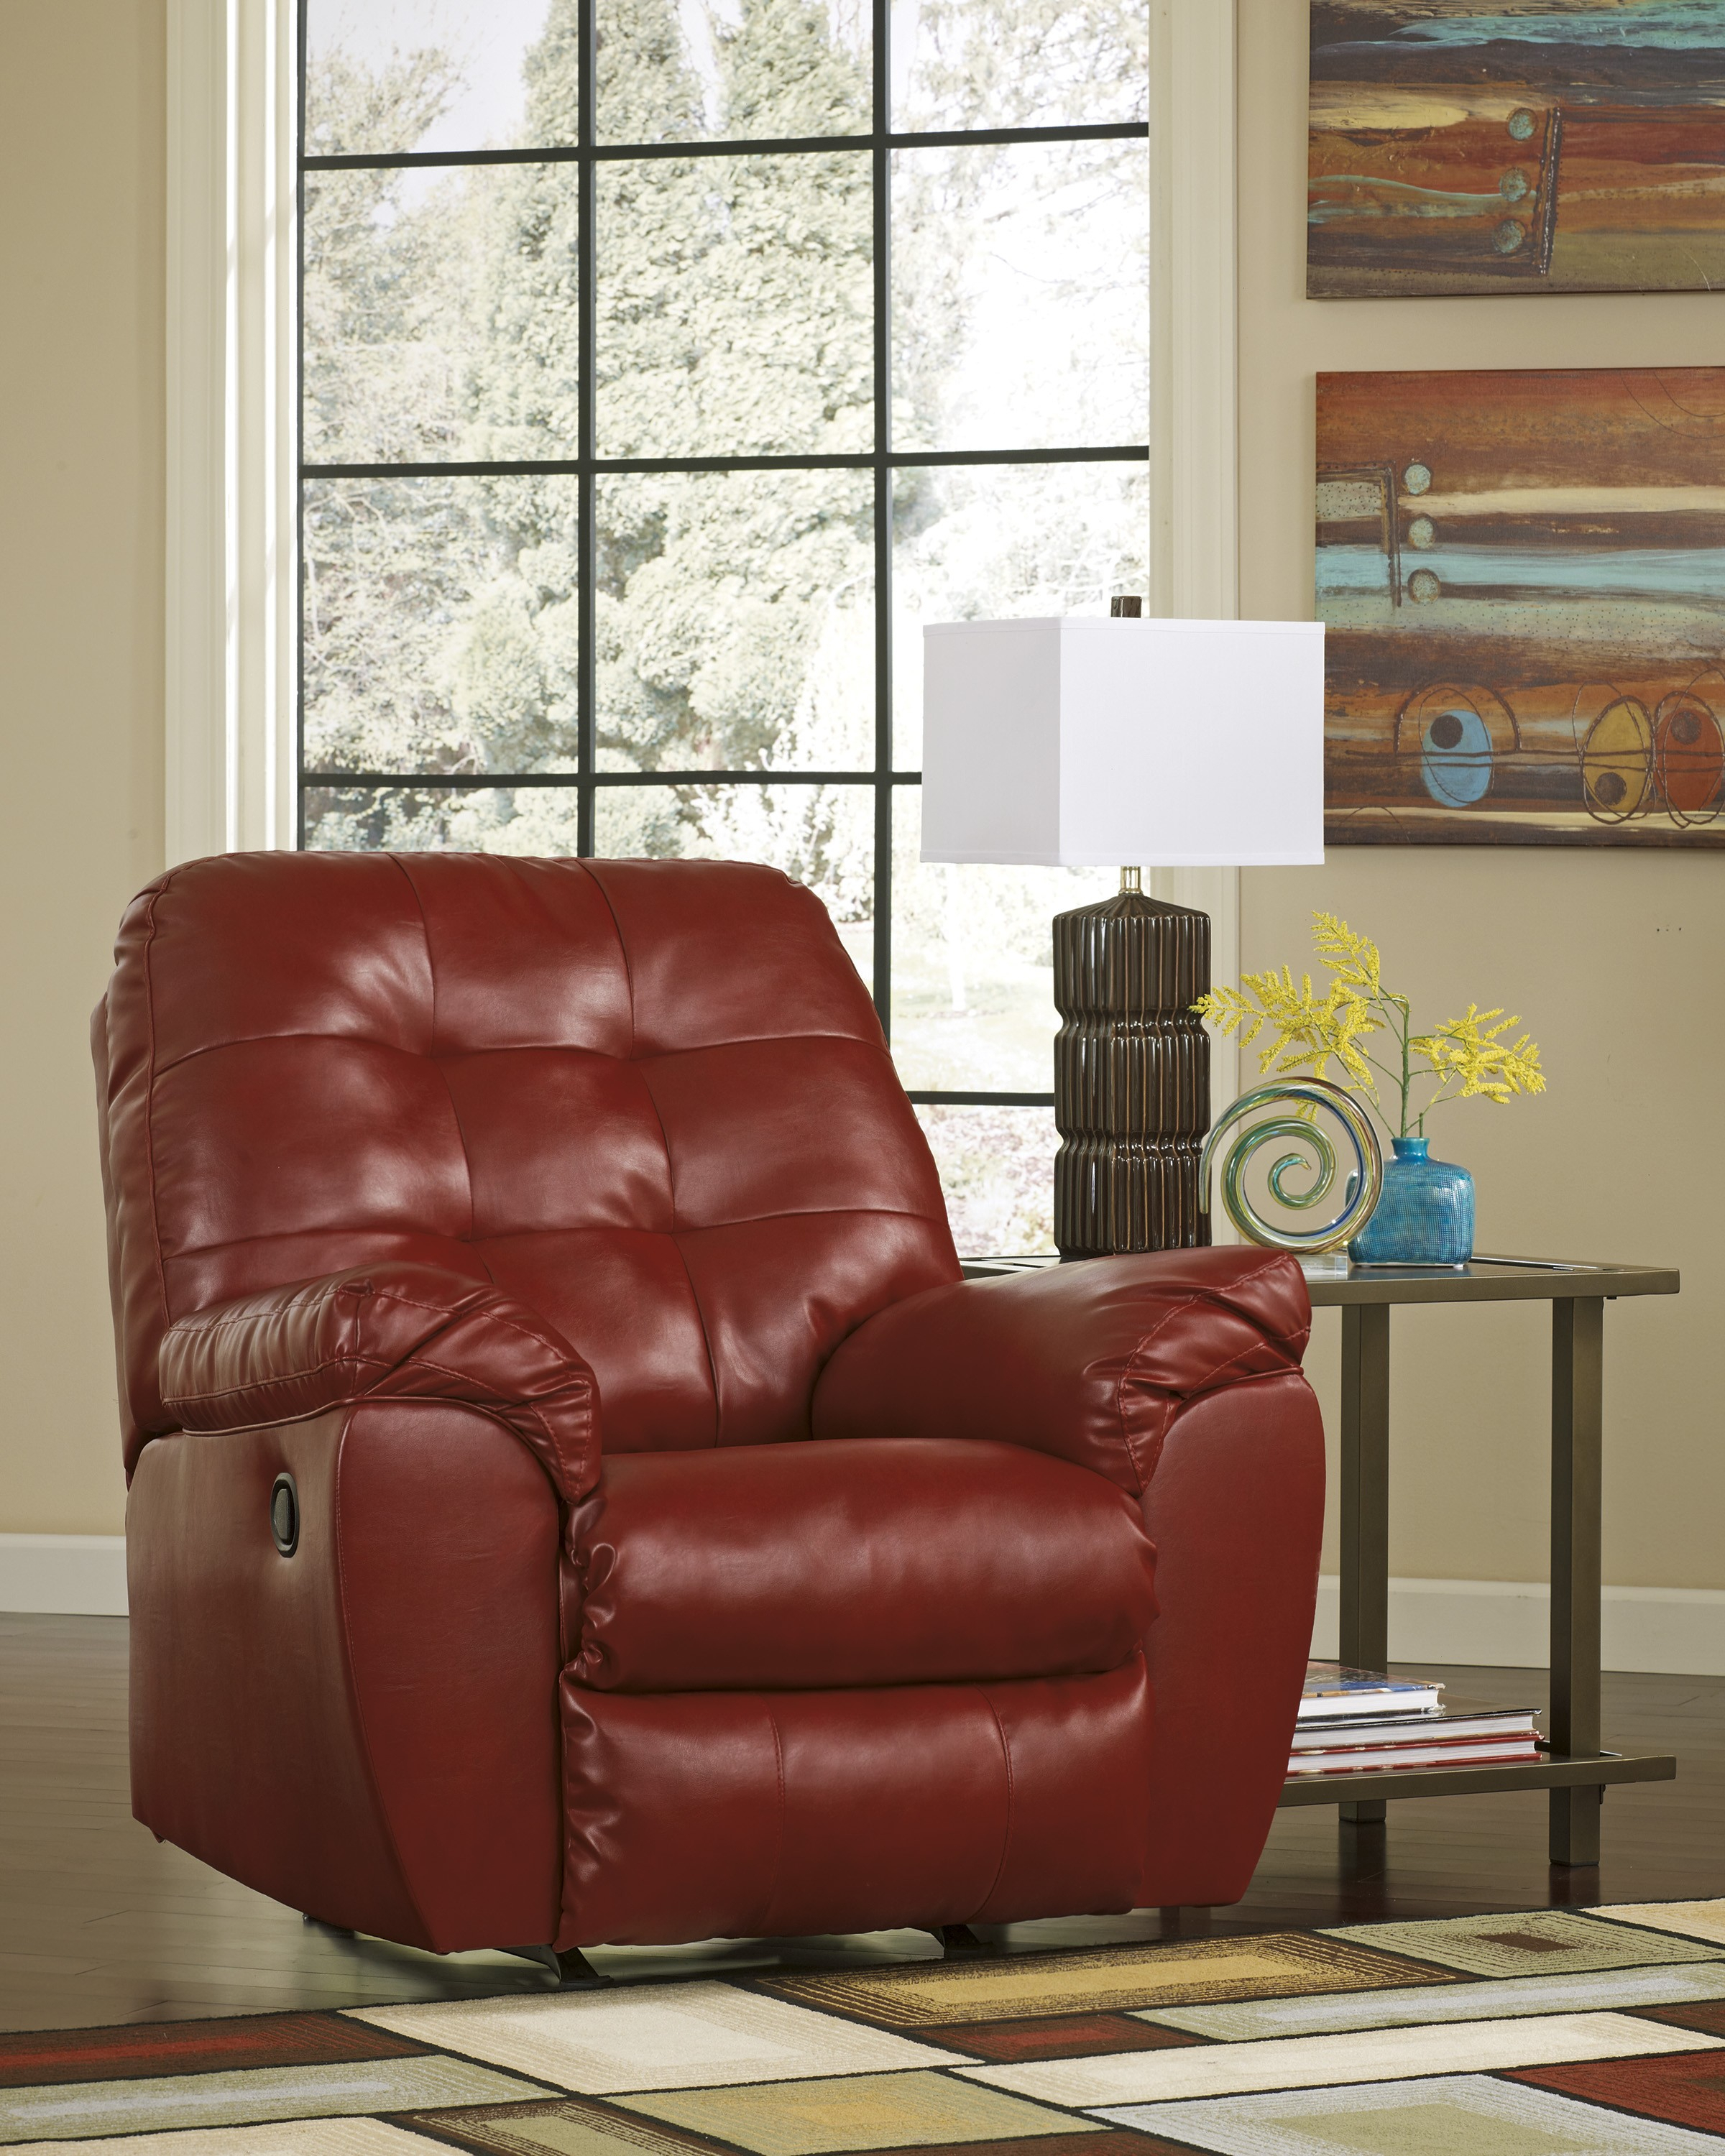 Leon Furniture | Buy Living Rooms Recliners Online, Phoenix Throughout Hercules Oyster Swivel Glider Recliners (Image 13 of 20)